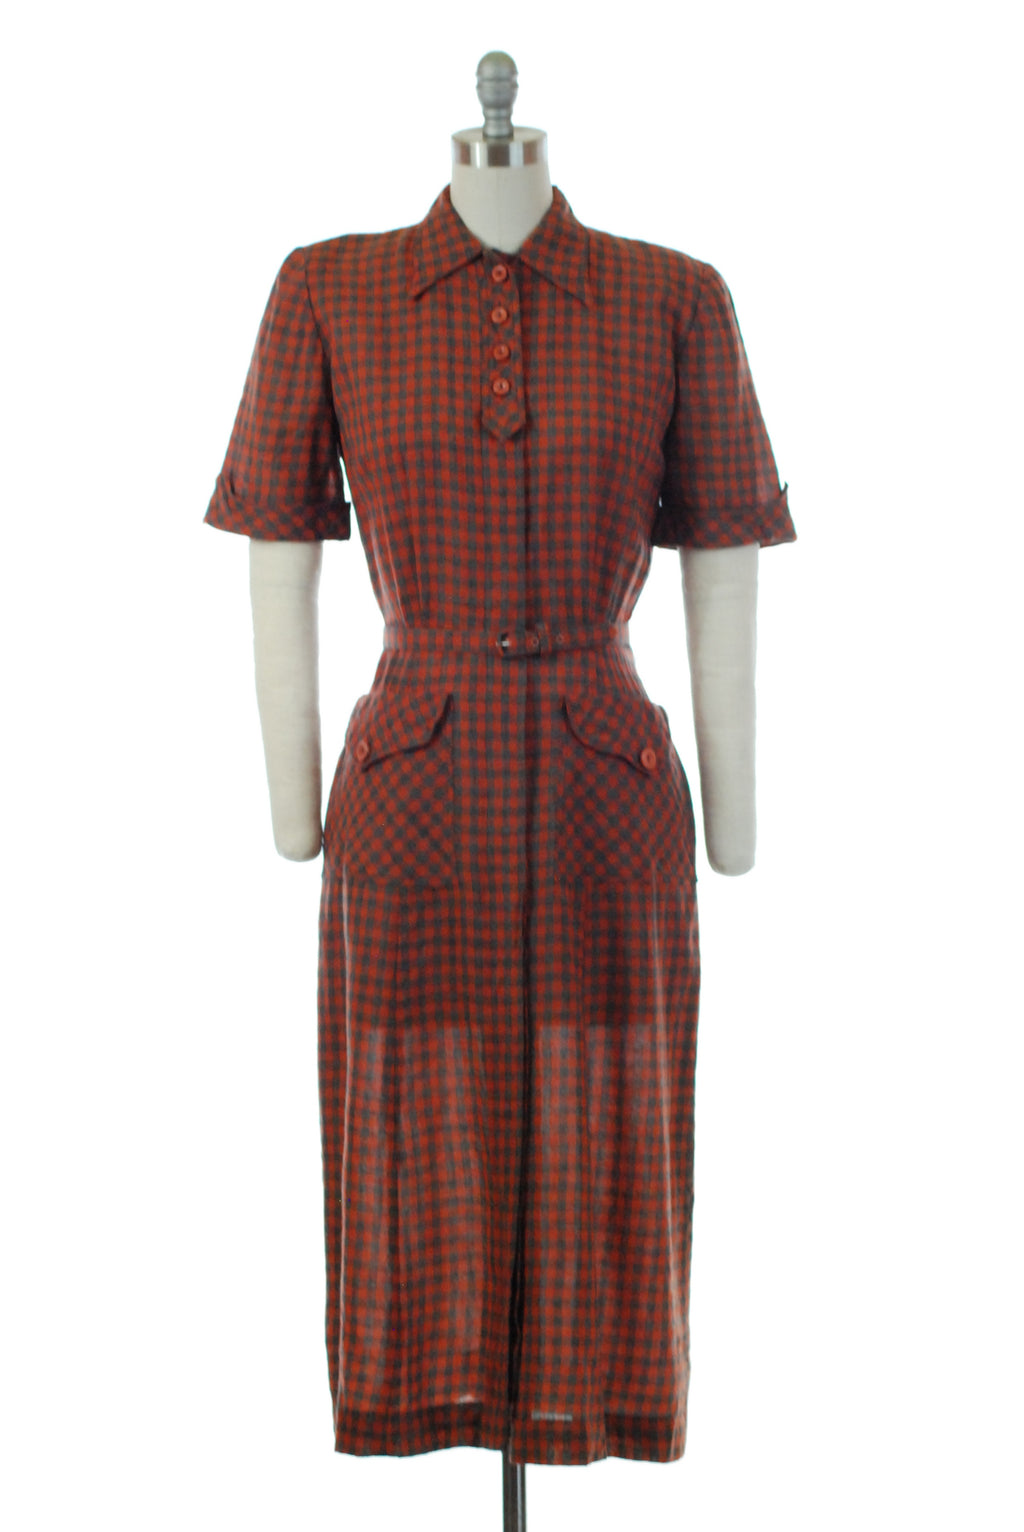 Charming 1940s Checkered Plaid Wool Dress in Coral and Grey